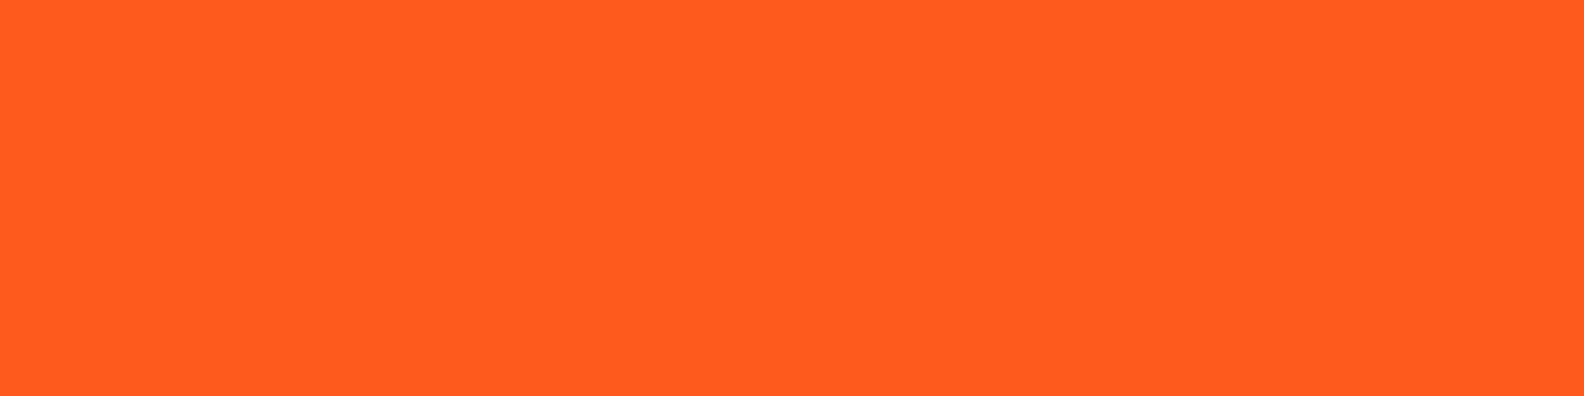 1584x396 Giants Orange Solid Color Background